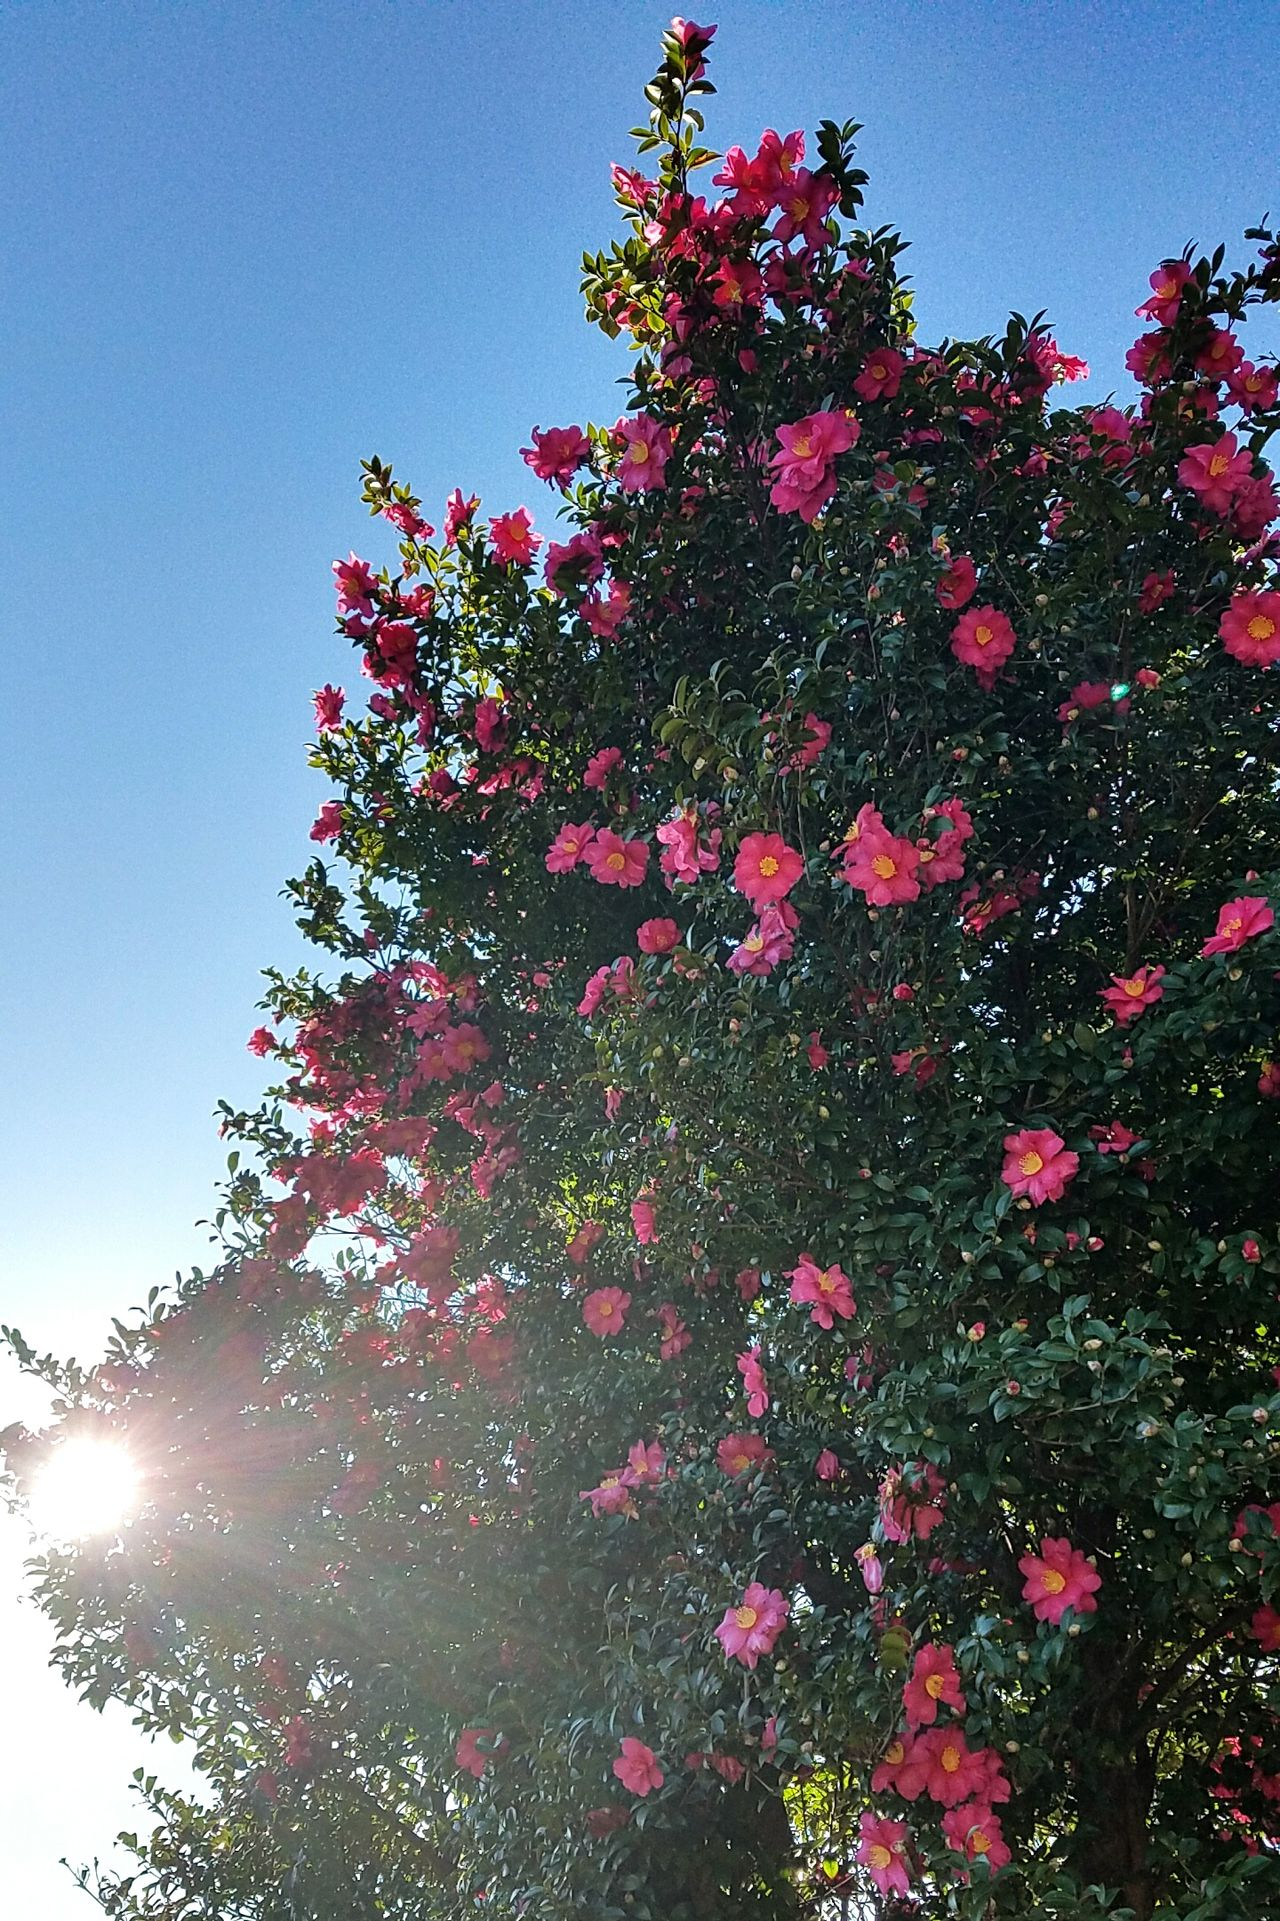 Sky Flower Beauty In Nature Flower Photography Flowerlovers Trees 椿 空 花 Camellia Flower Camellia Japonica Tokyo,Japan